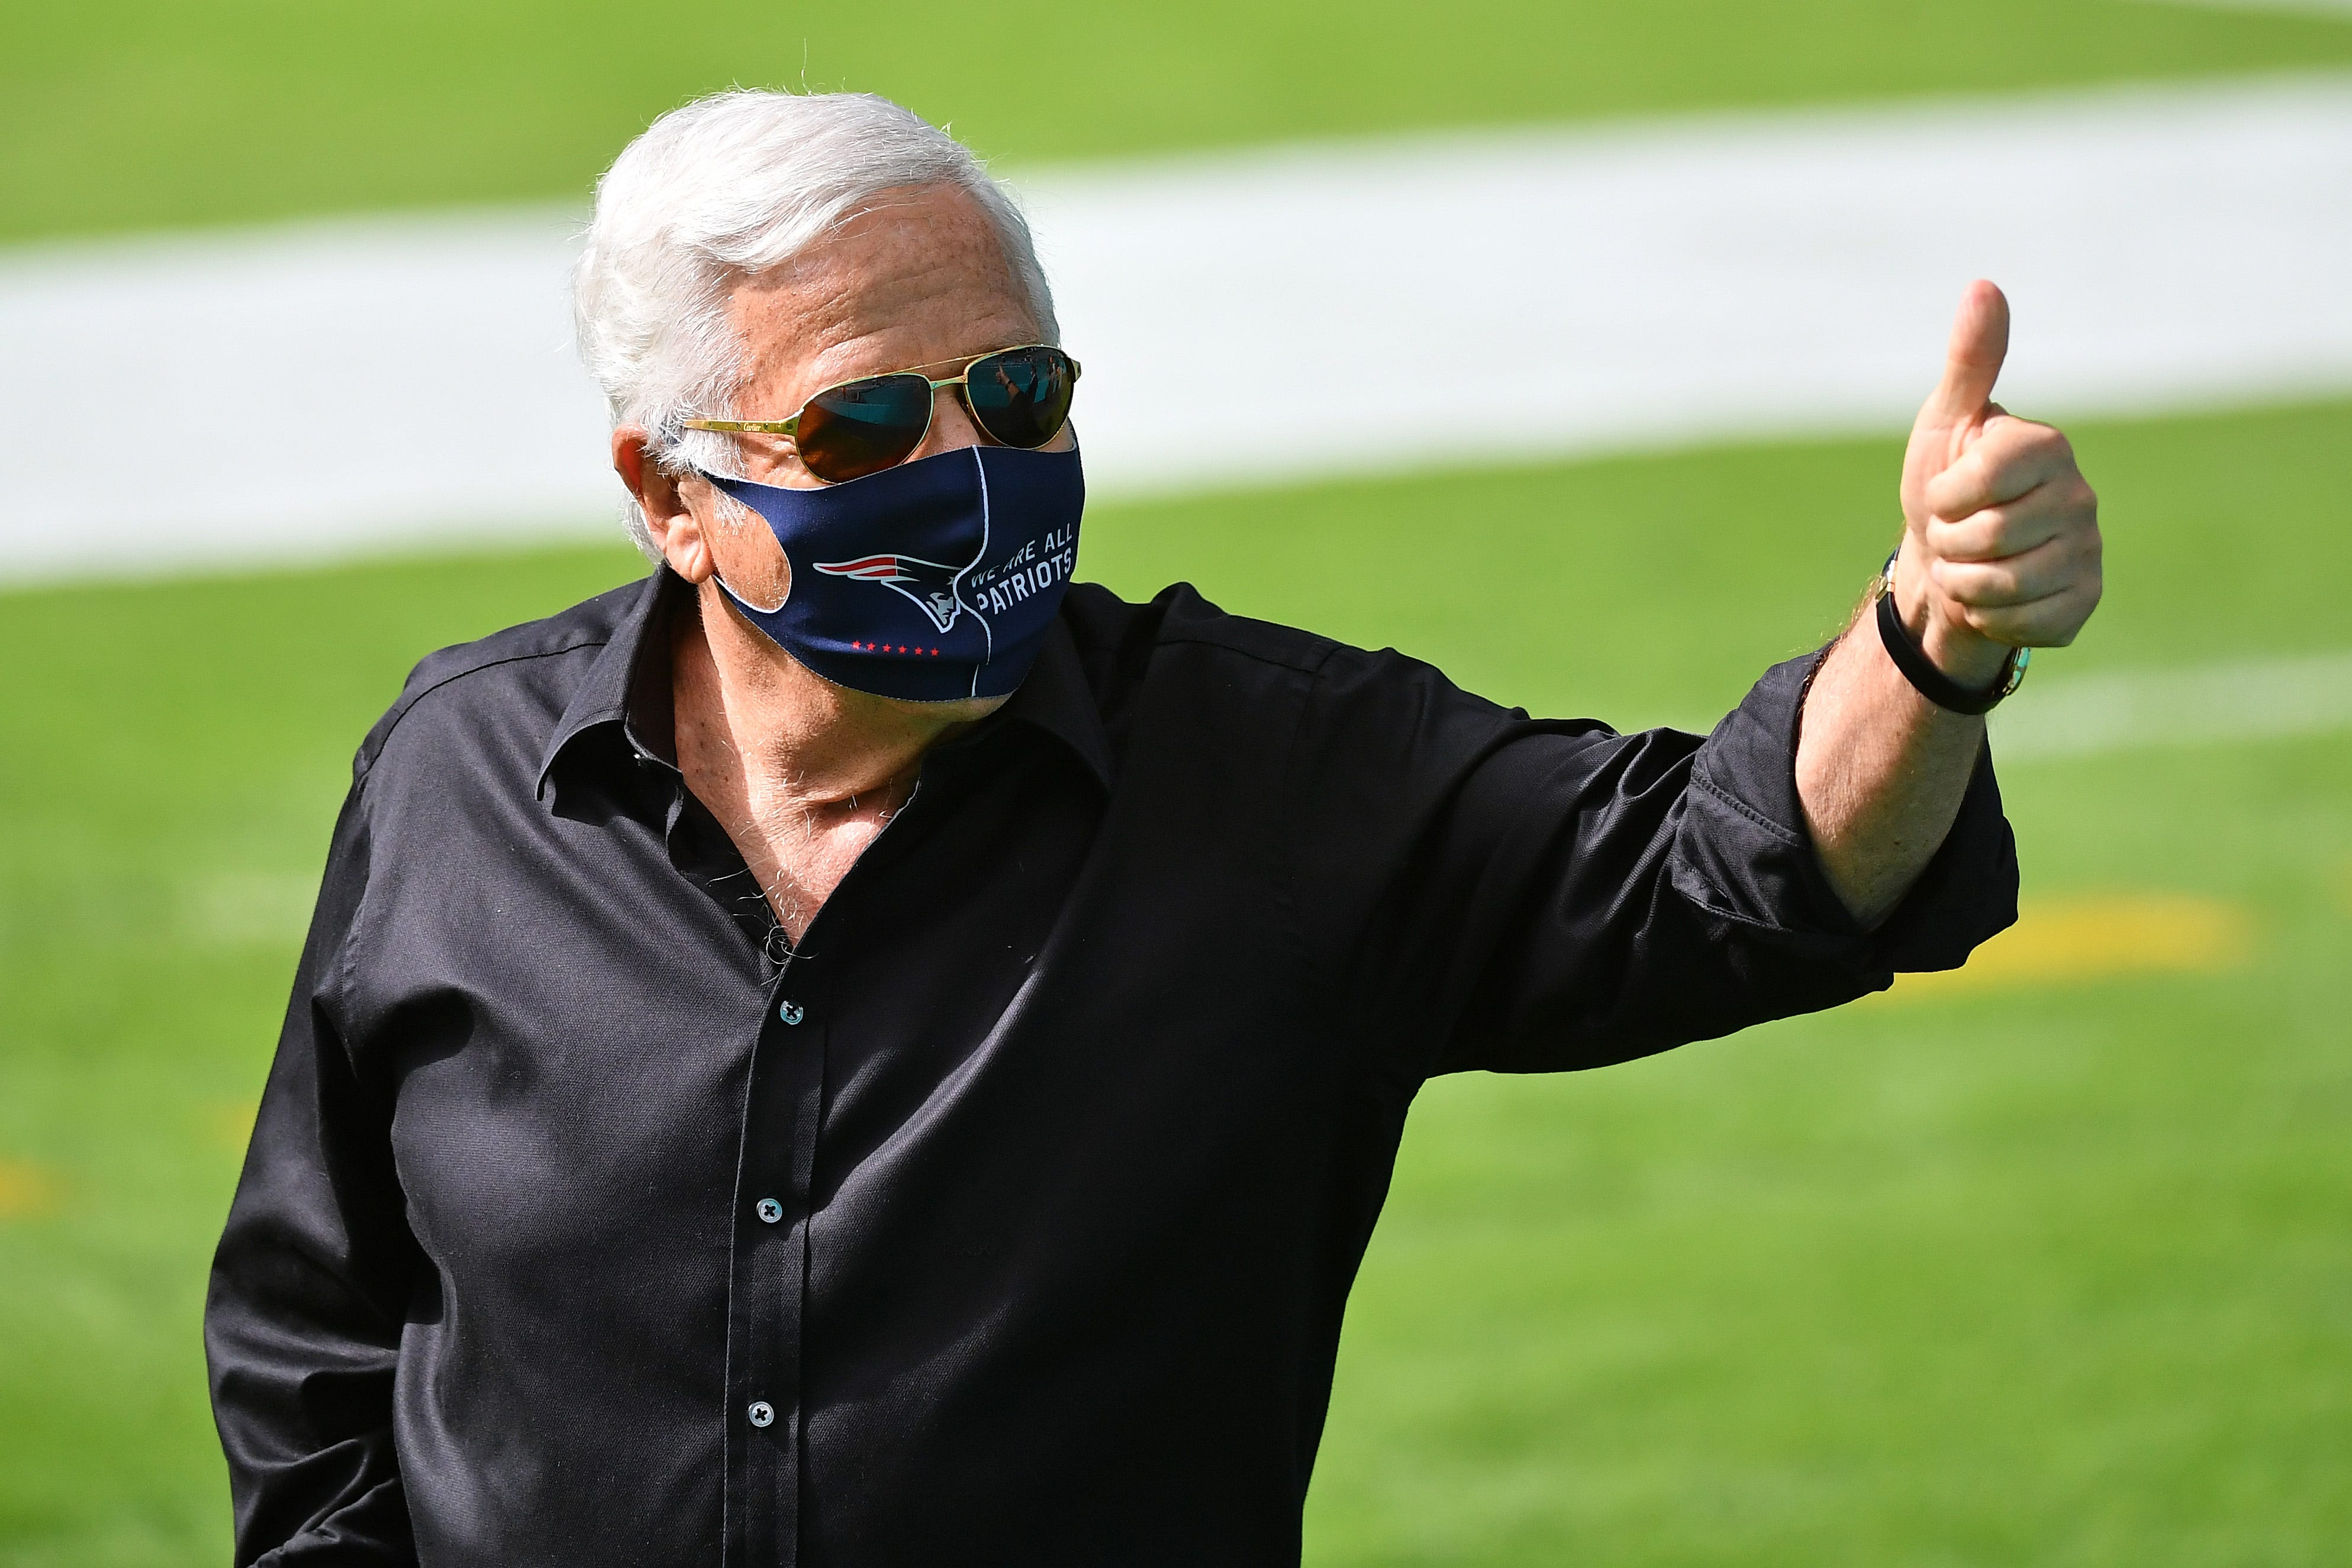 New England Patriots owner Robert Kraft gifted brand new Bentley for 80th birthday